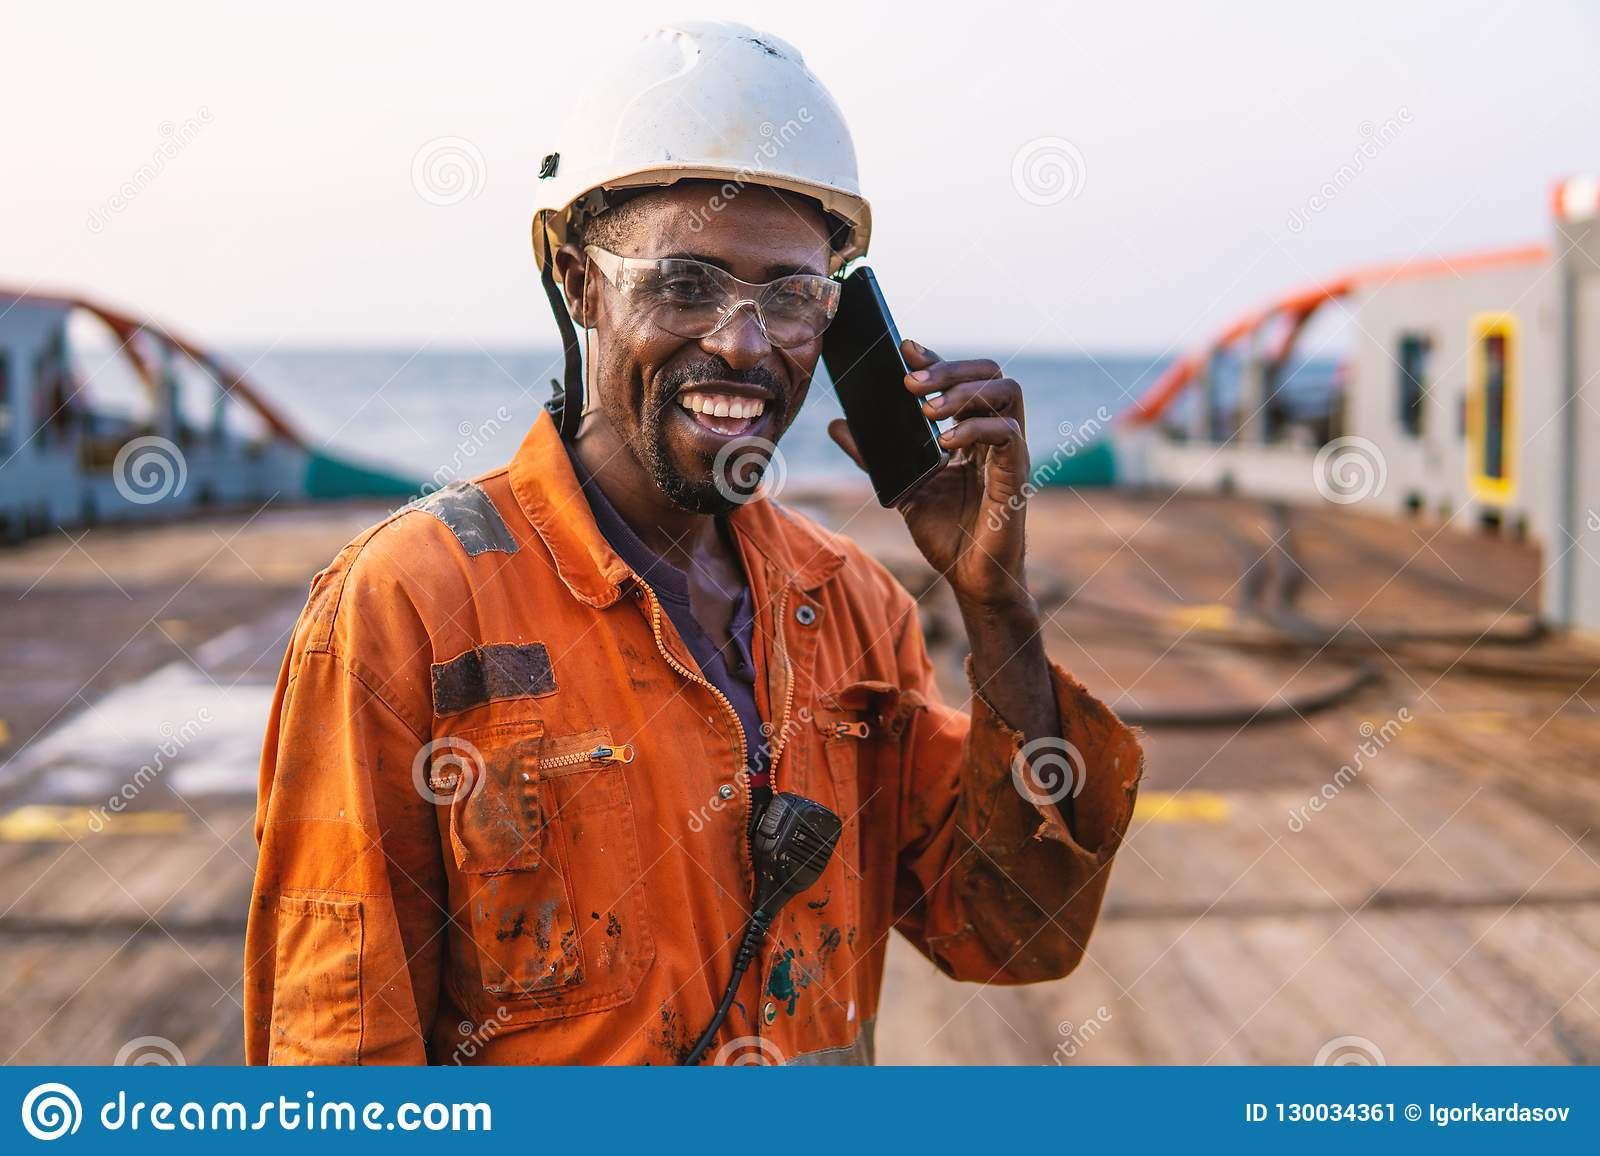 Marine Deck Officer Or Chief Mate On Deck Of Vessel Or Ship Stock